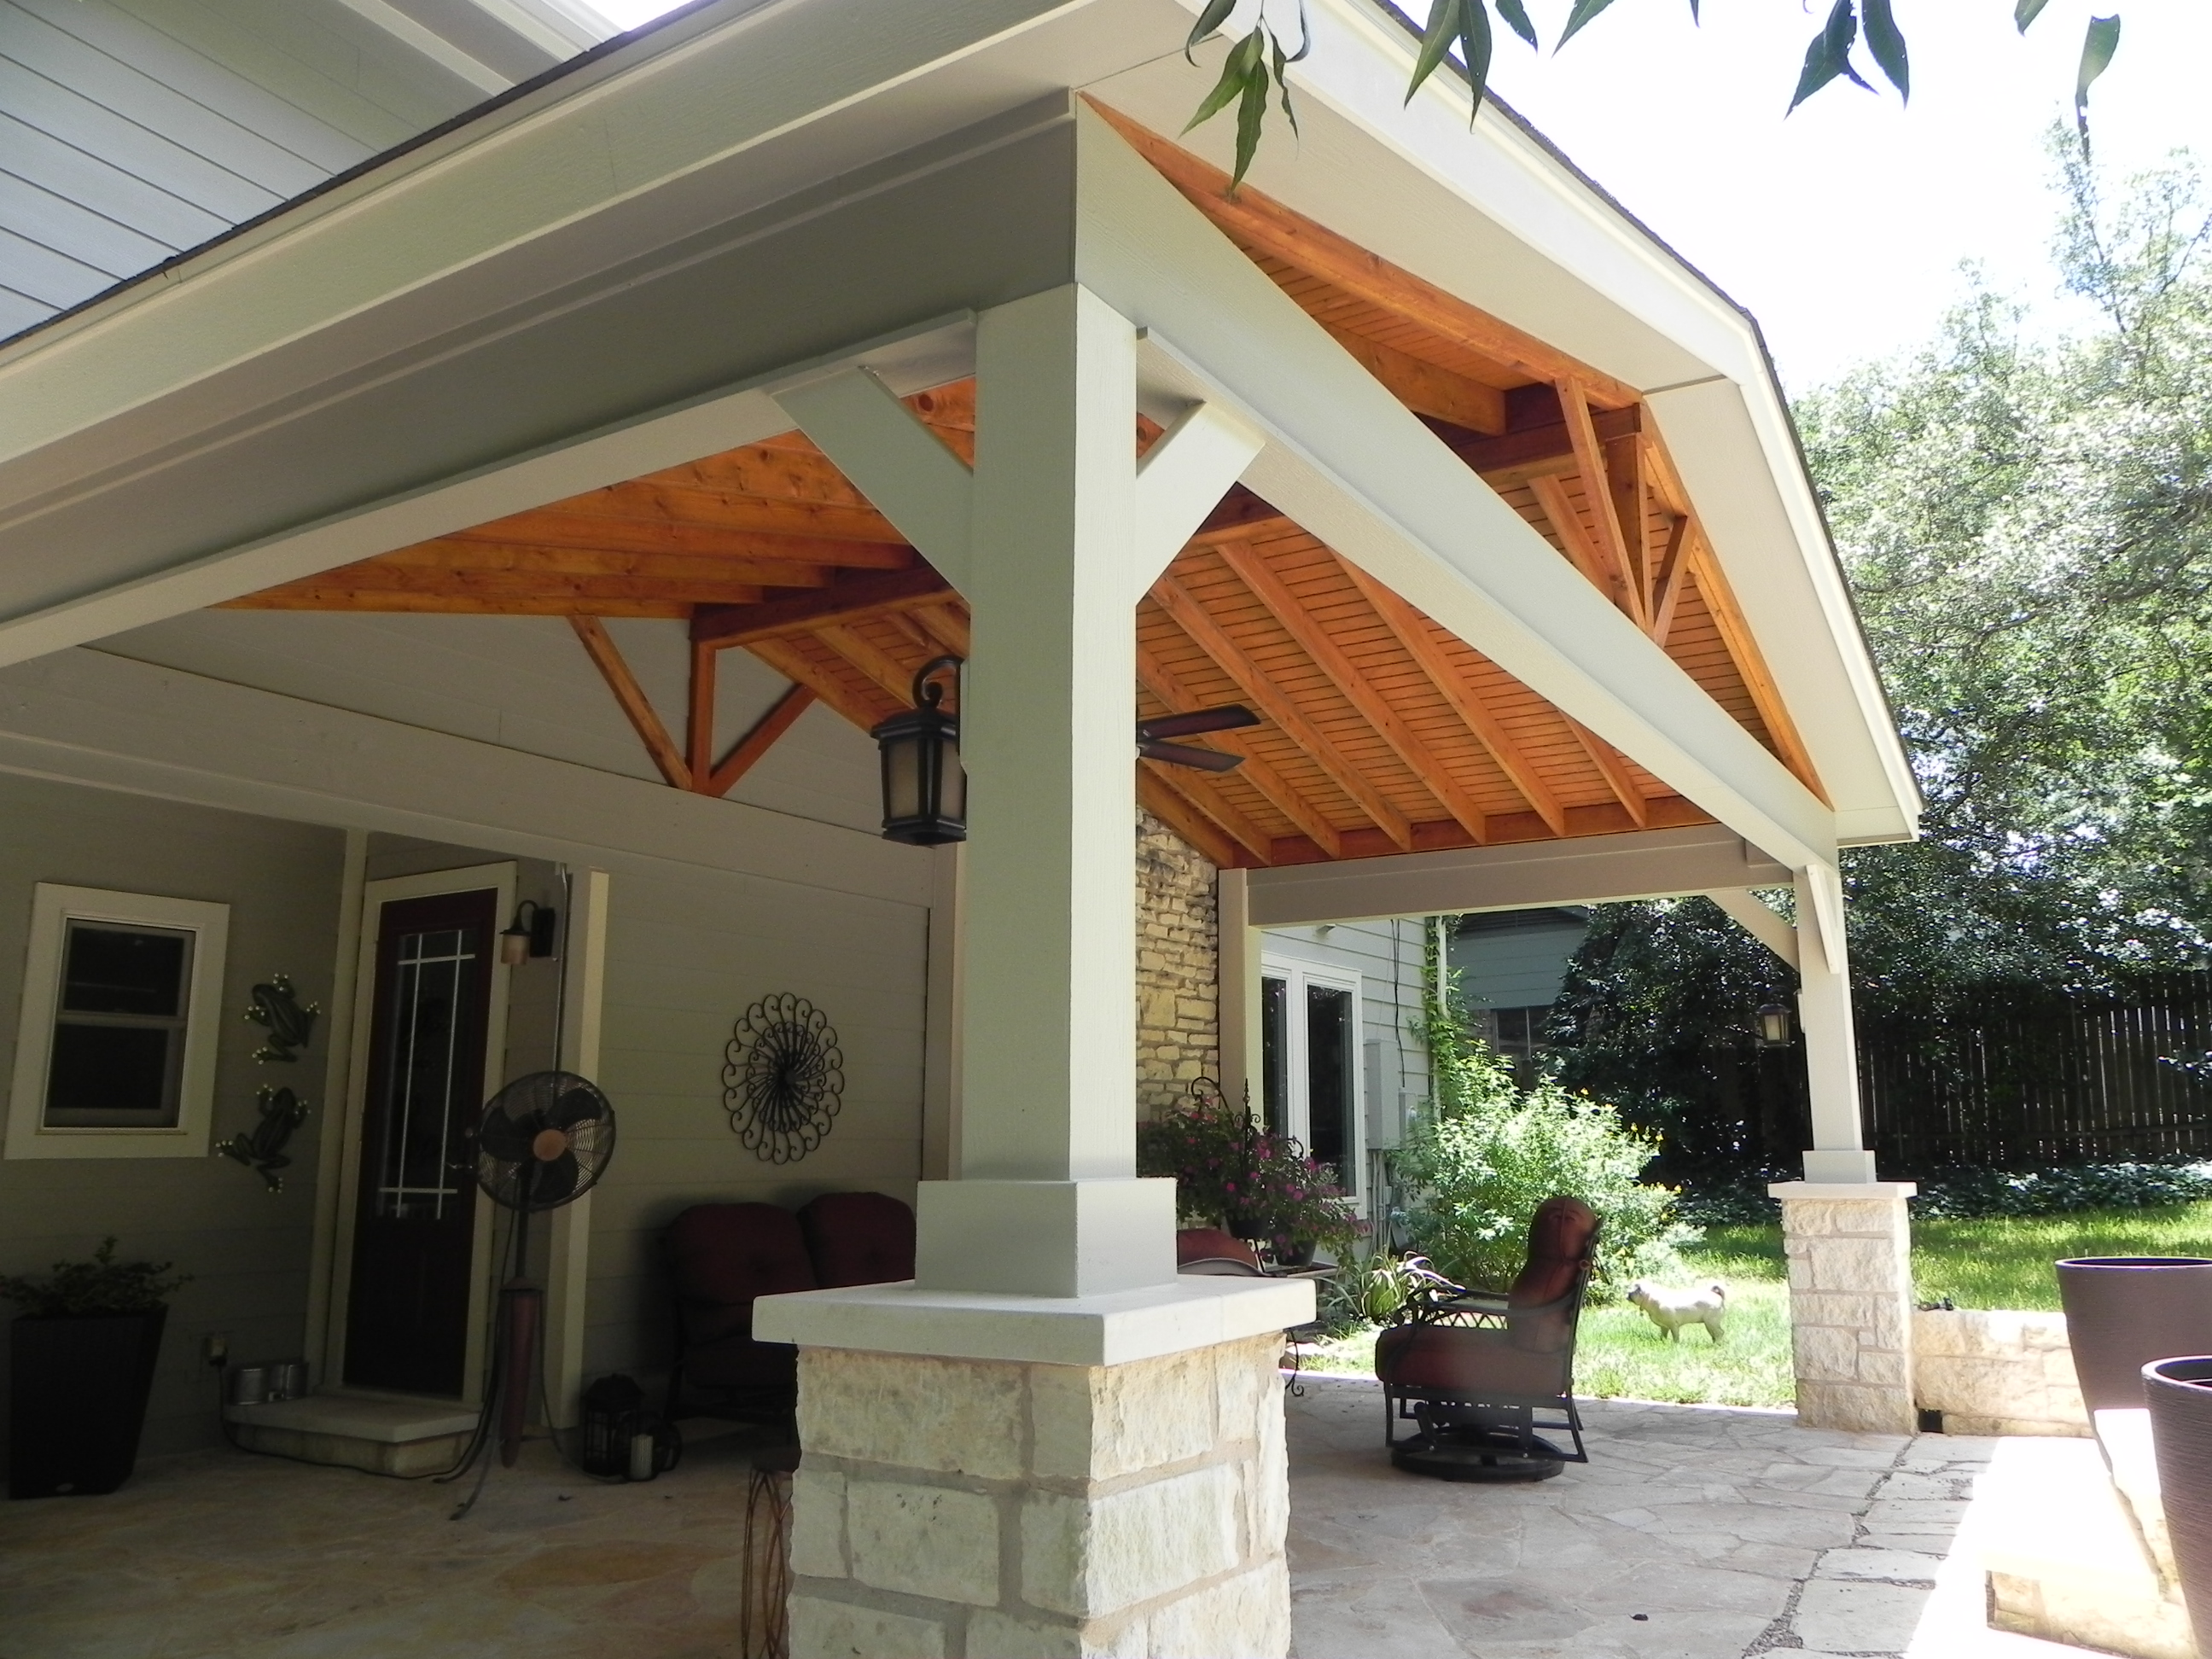 Austin Decks, Pergolas, Covered Patios, Porches, More